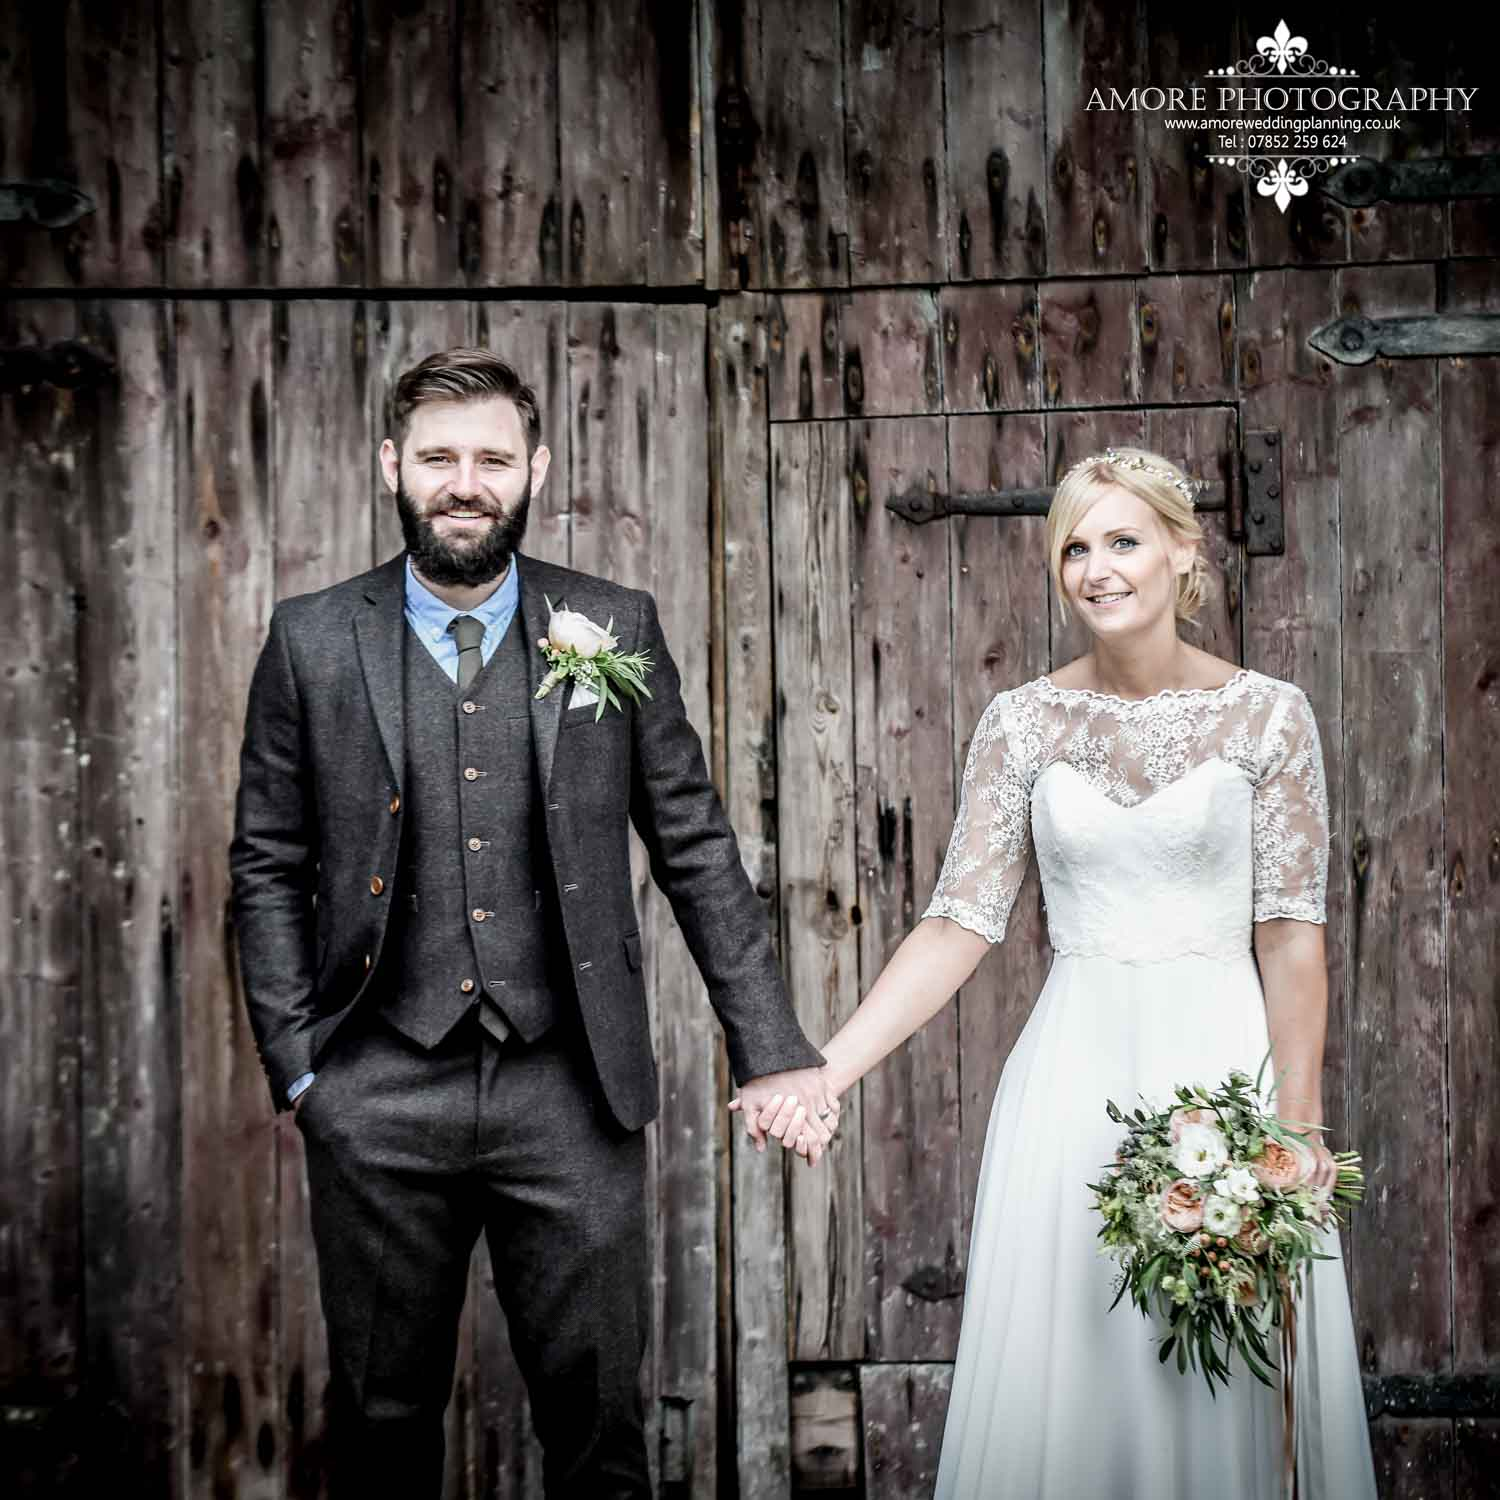 Vintage Wedding Photographer Wakefield North Yorkshire Leeds Wedding Photography Vintage Rustic Barn Weddings (129)